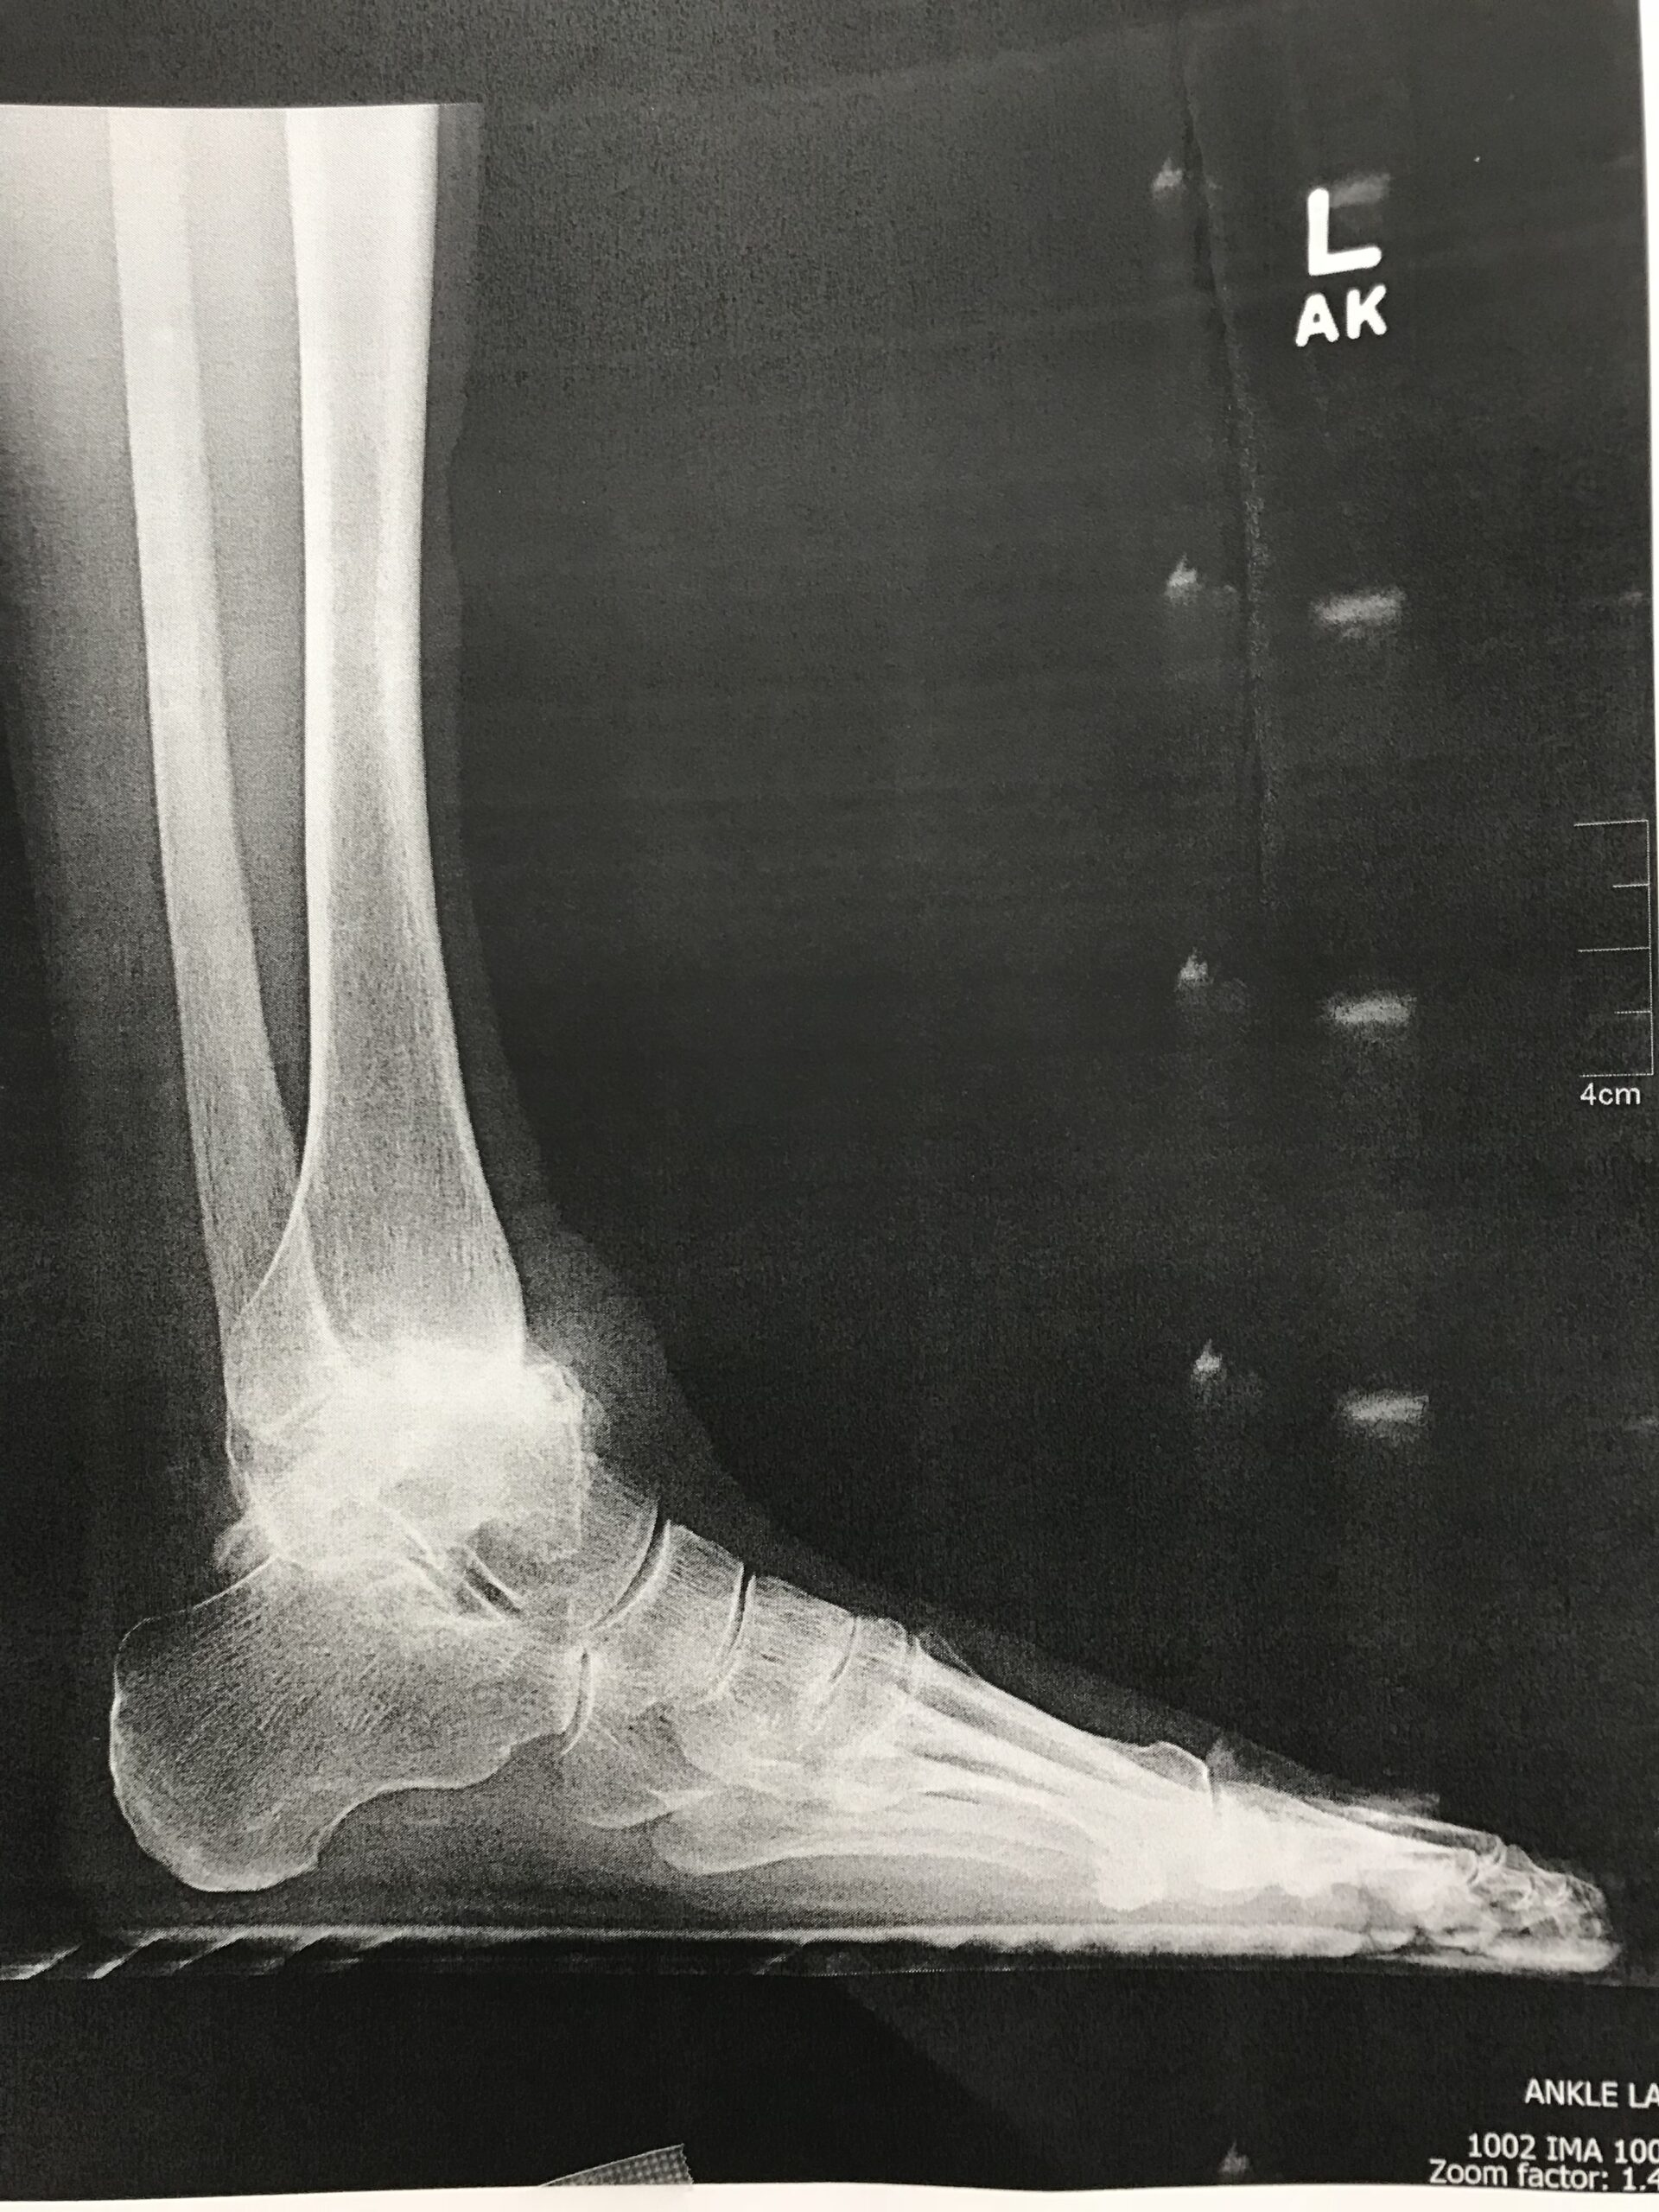 Total Ankle Replacement Arthroplasty x ray image a shasta orthopaedics 051721